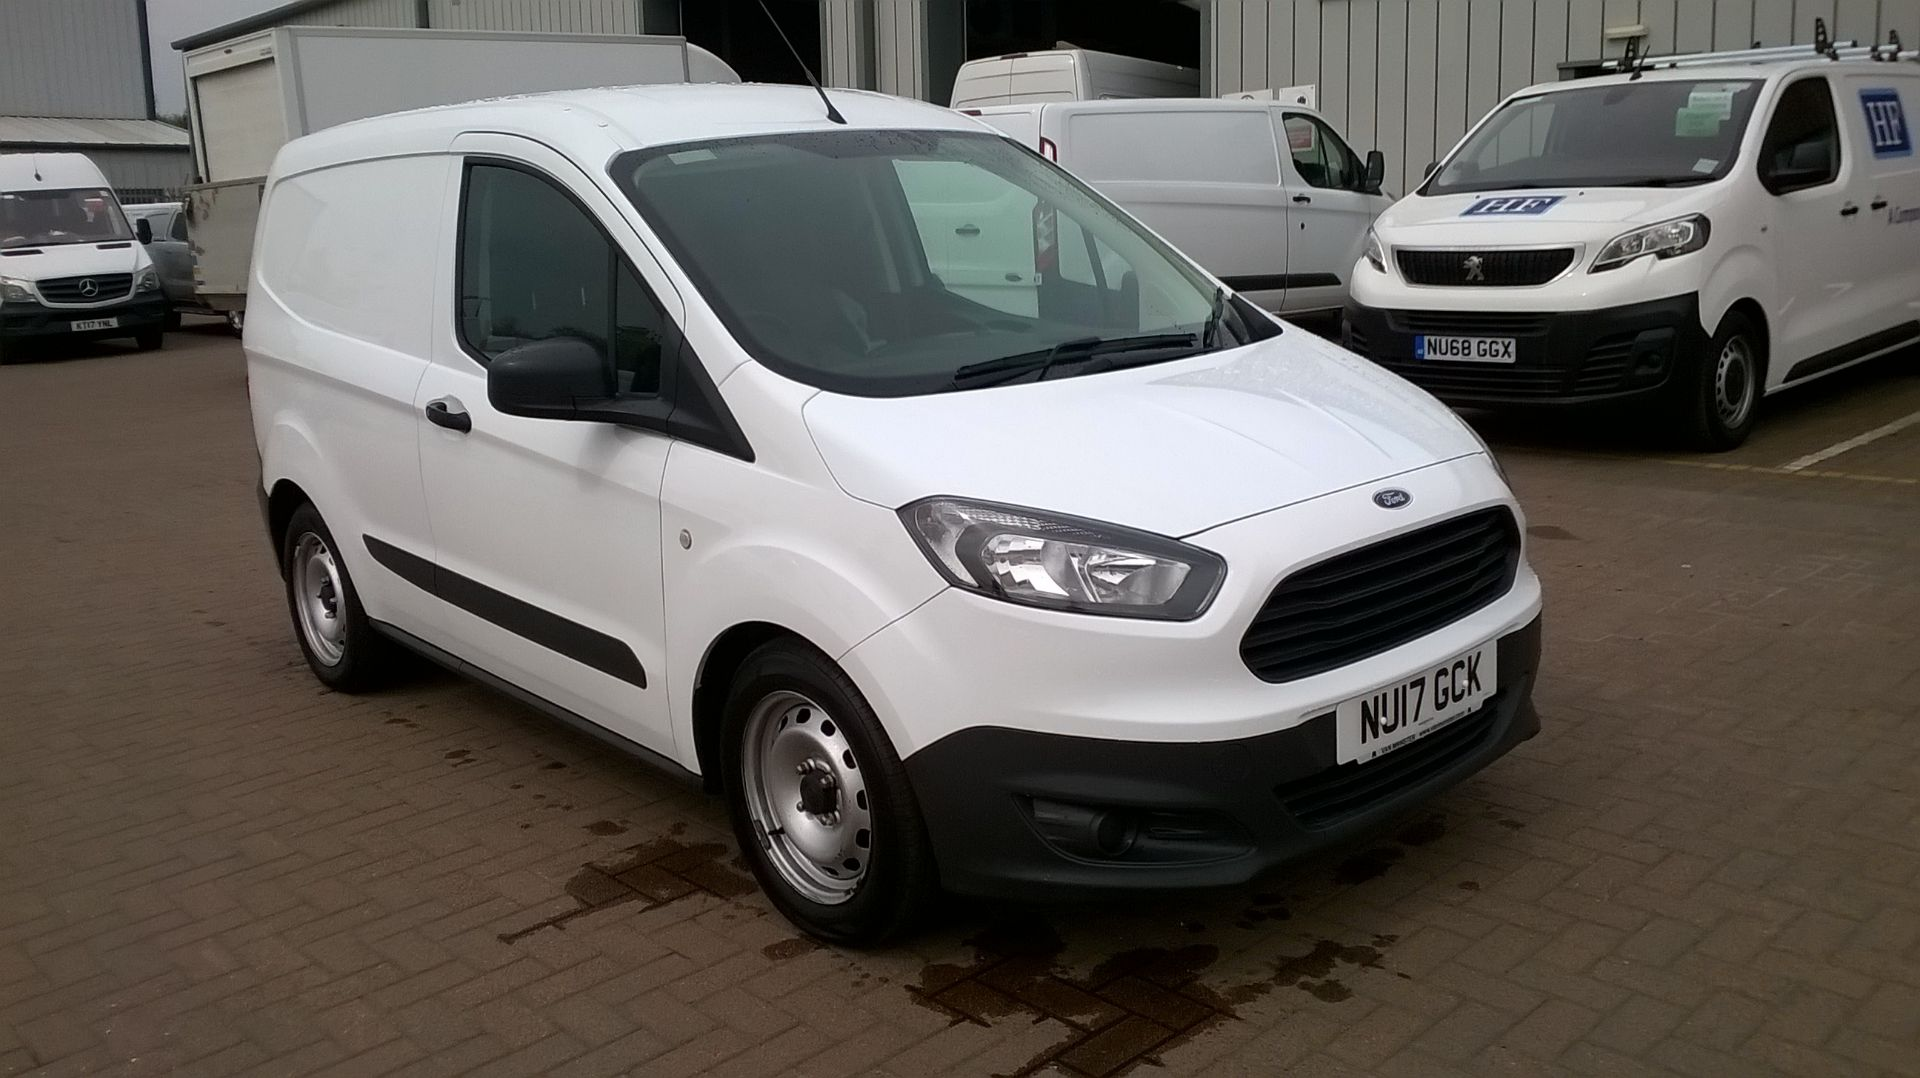 08a69baf3c Used Ford Transit Vans for Sale in Edinburgh